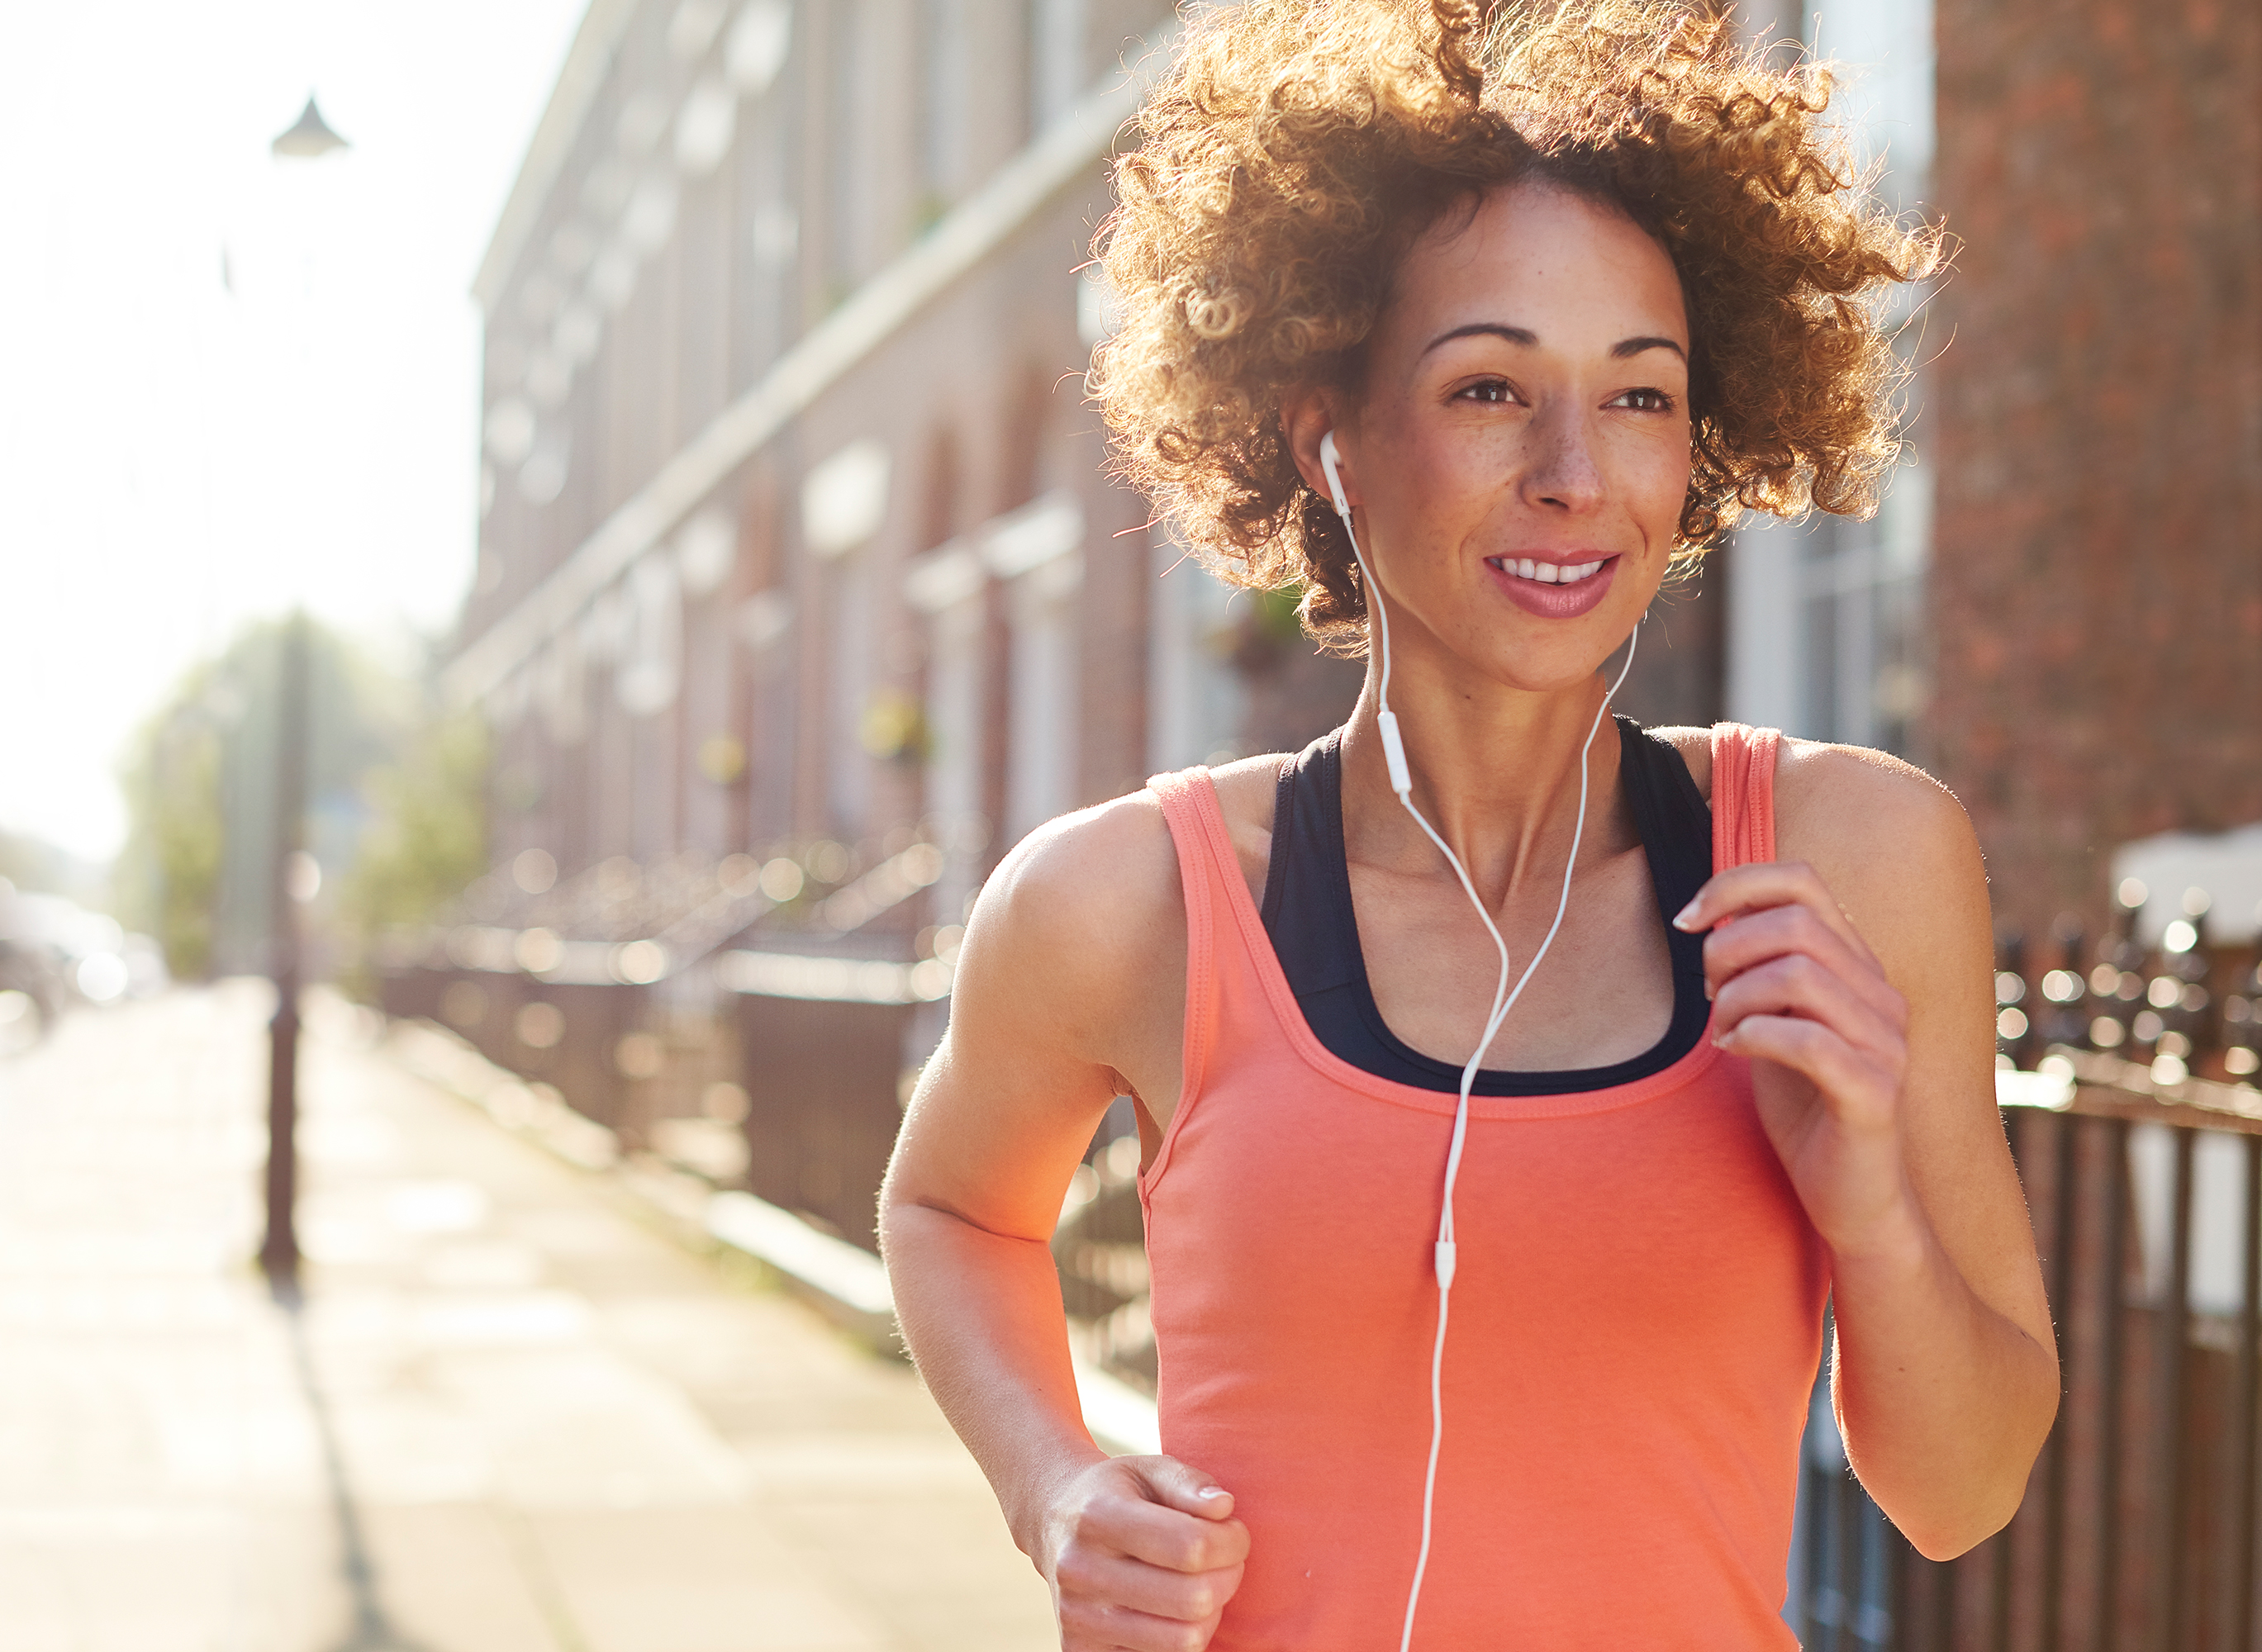 A woman is jogging in the morning in a city.